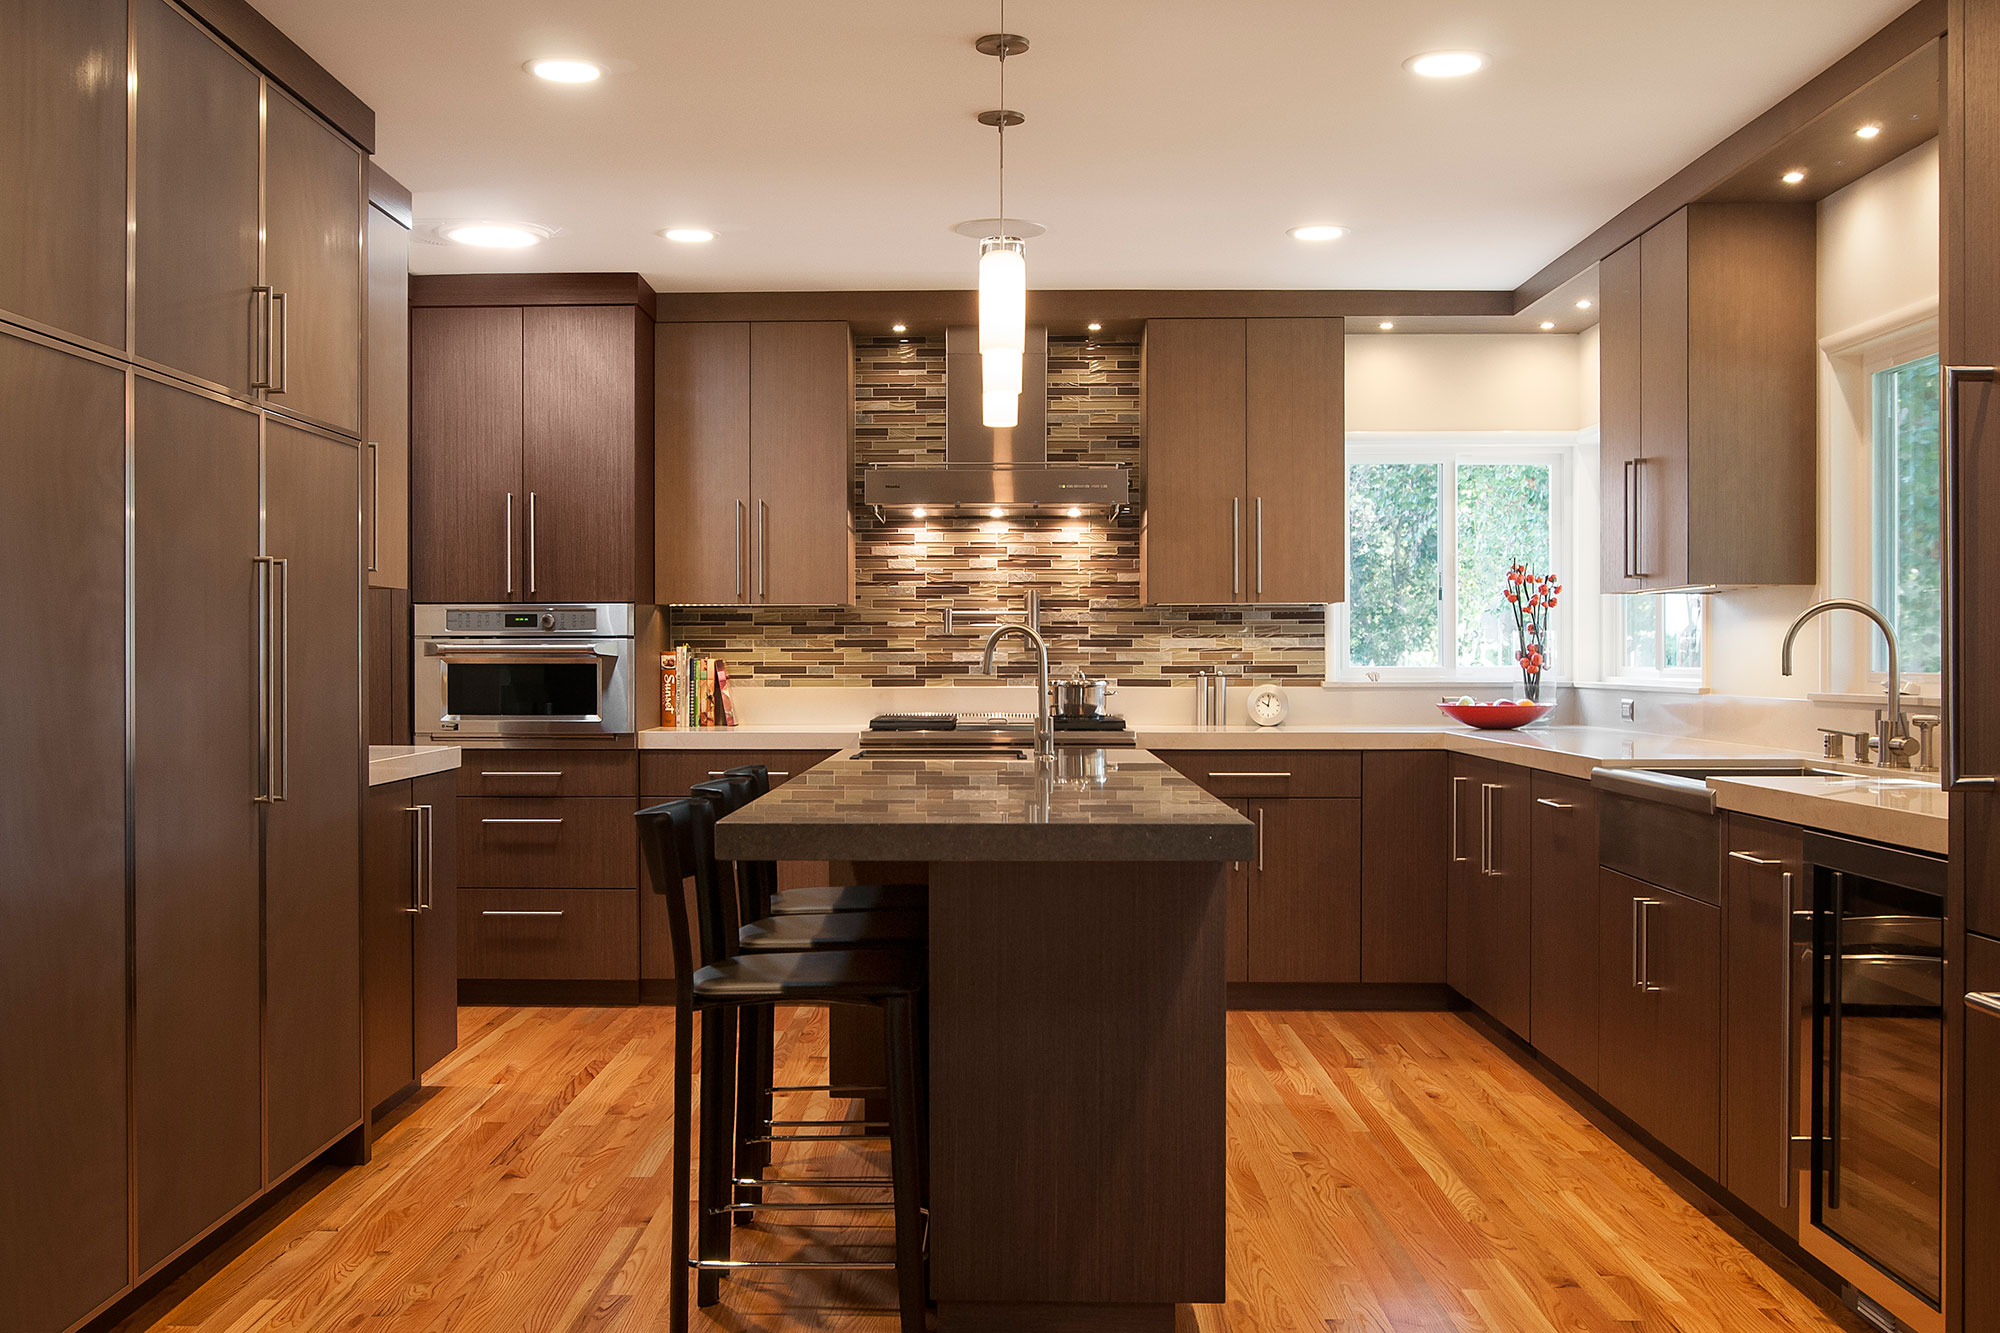 Remodelwest kitchen remodel willow glen remodeling services design build Kitchen design center san jose